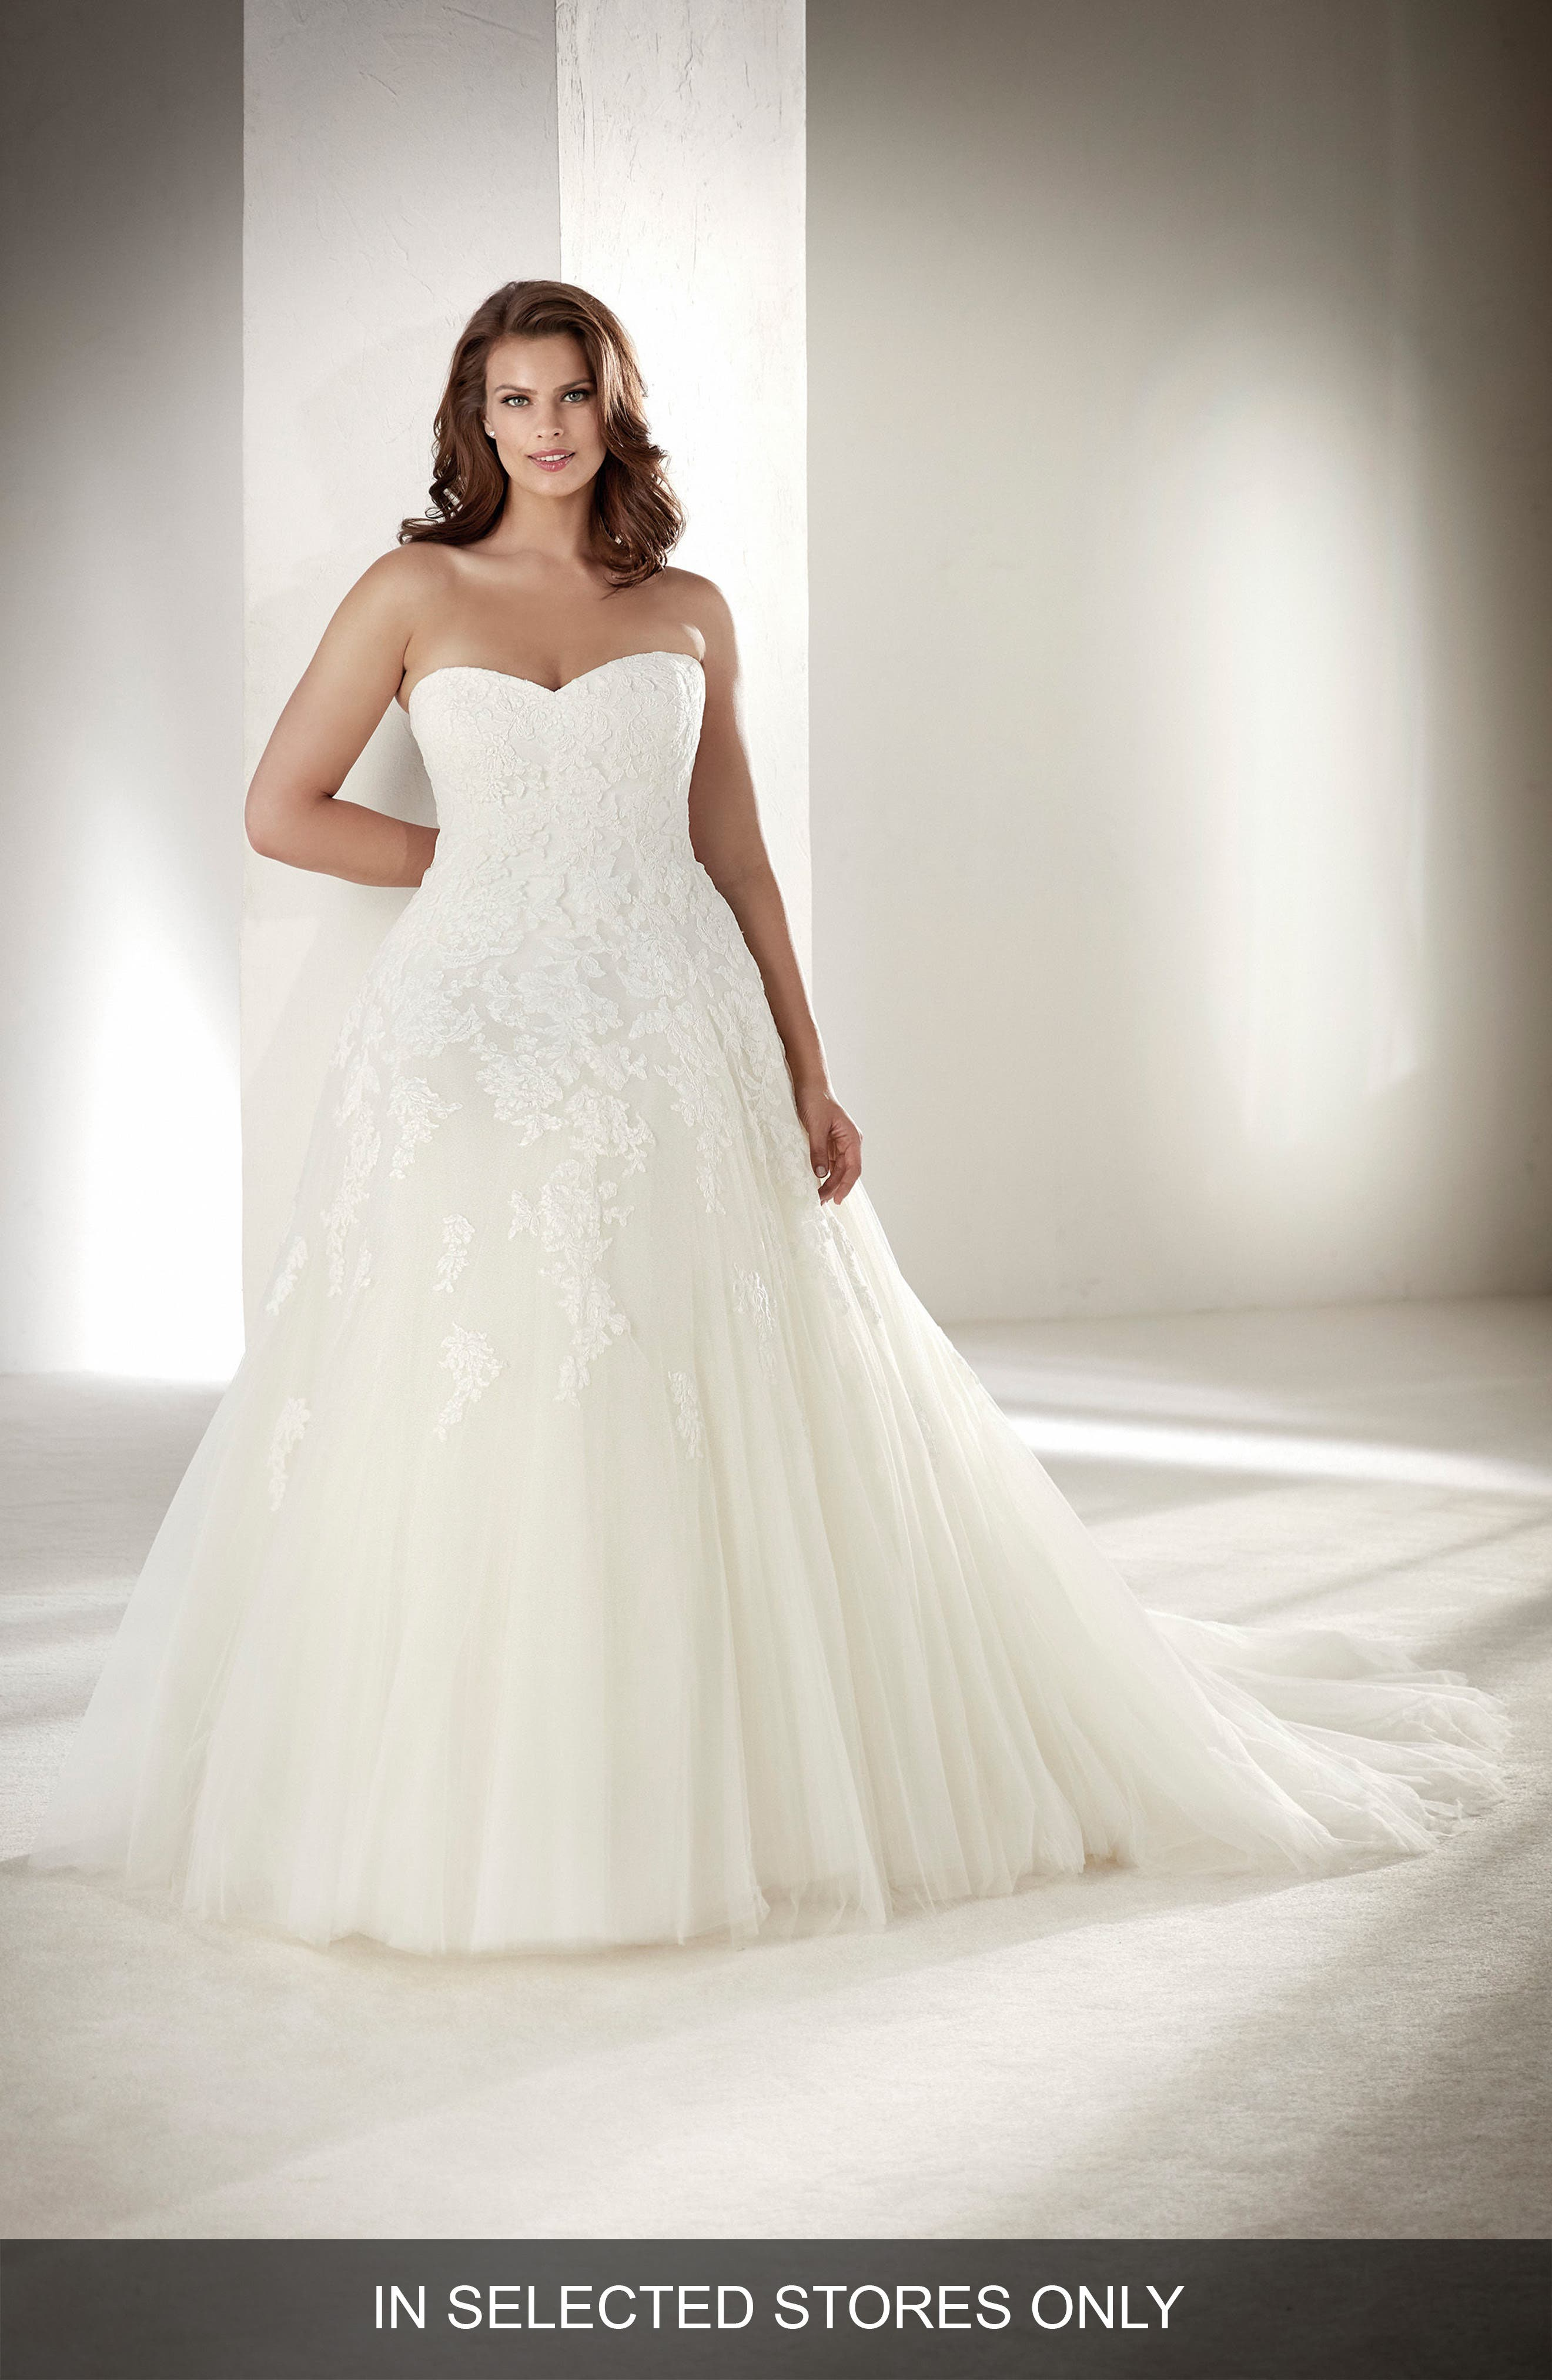 Alcanar Strapless Lace & Tulle Gown,                             Main thumbnail 1, color,                             OFF WHITE